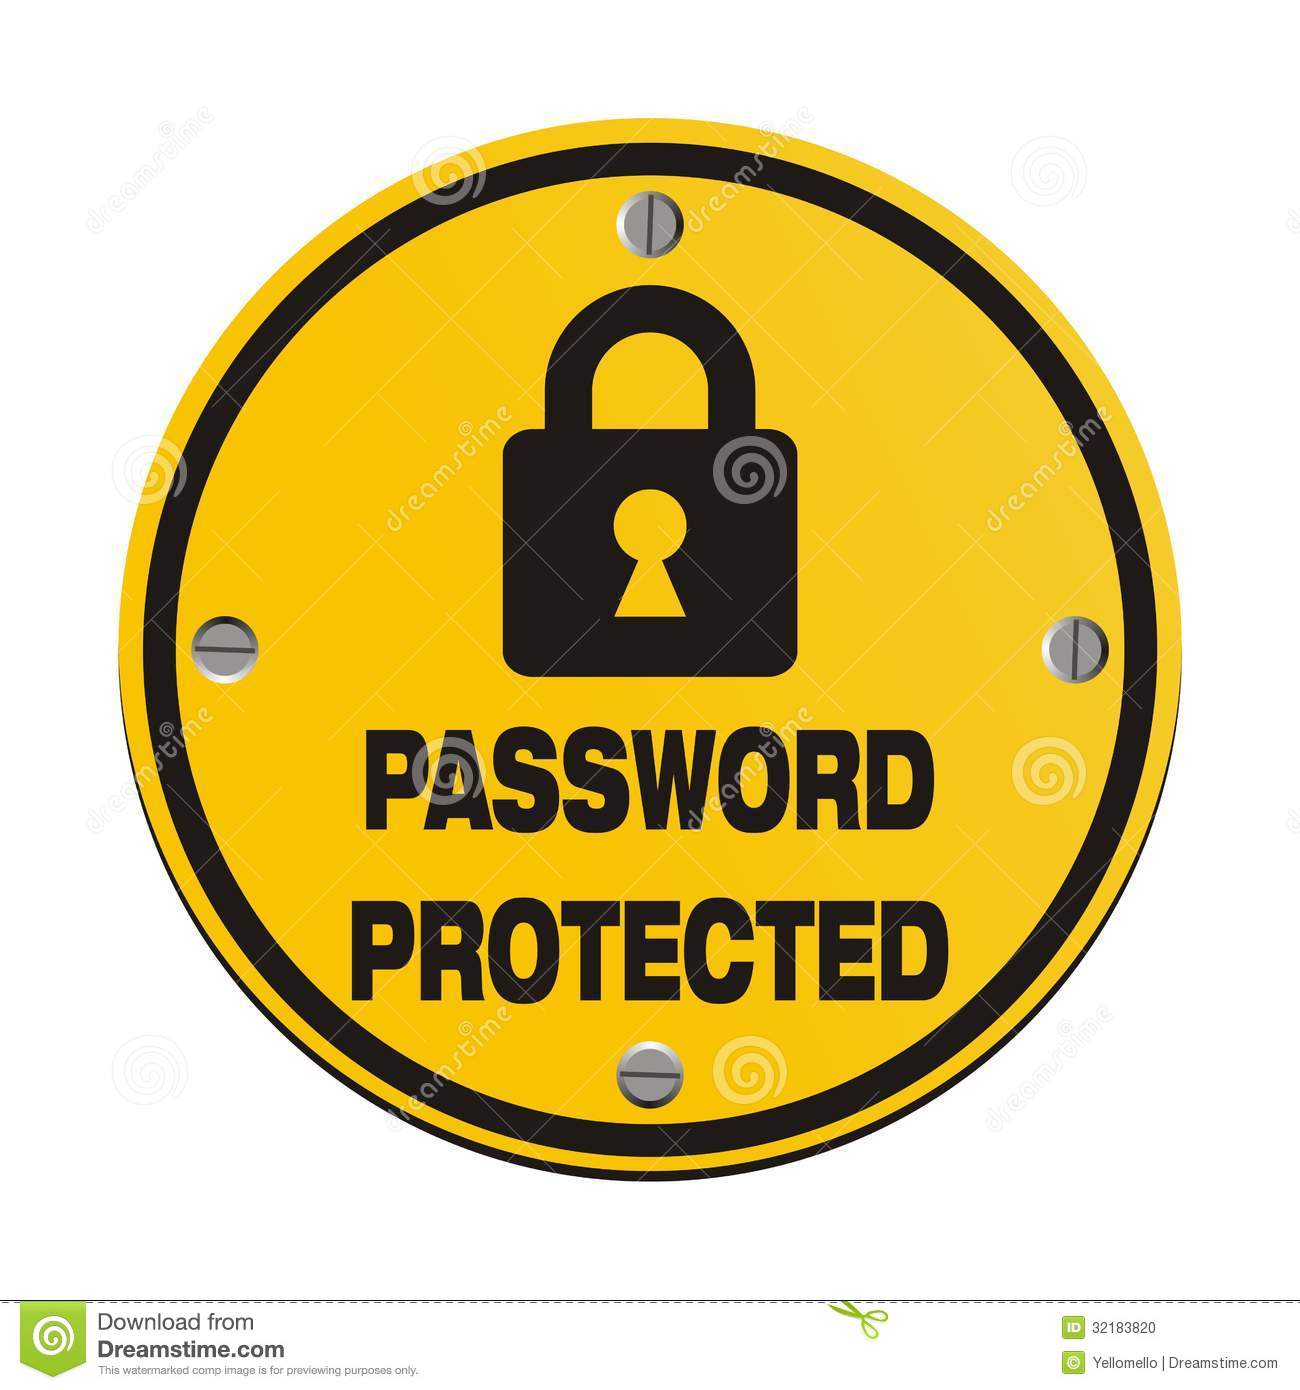 Password Protected - Circle Signs Stock Photo - Image: 32183820